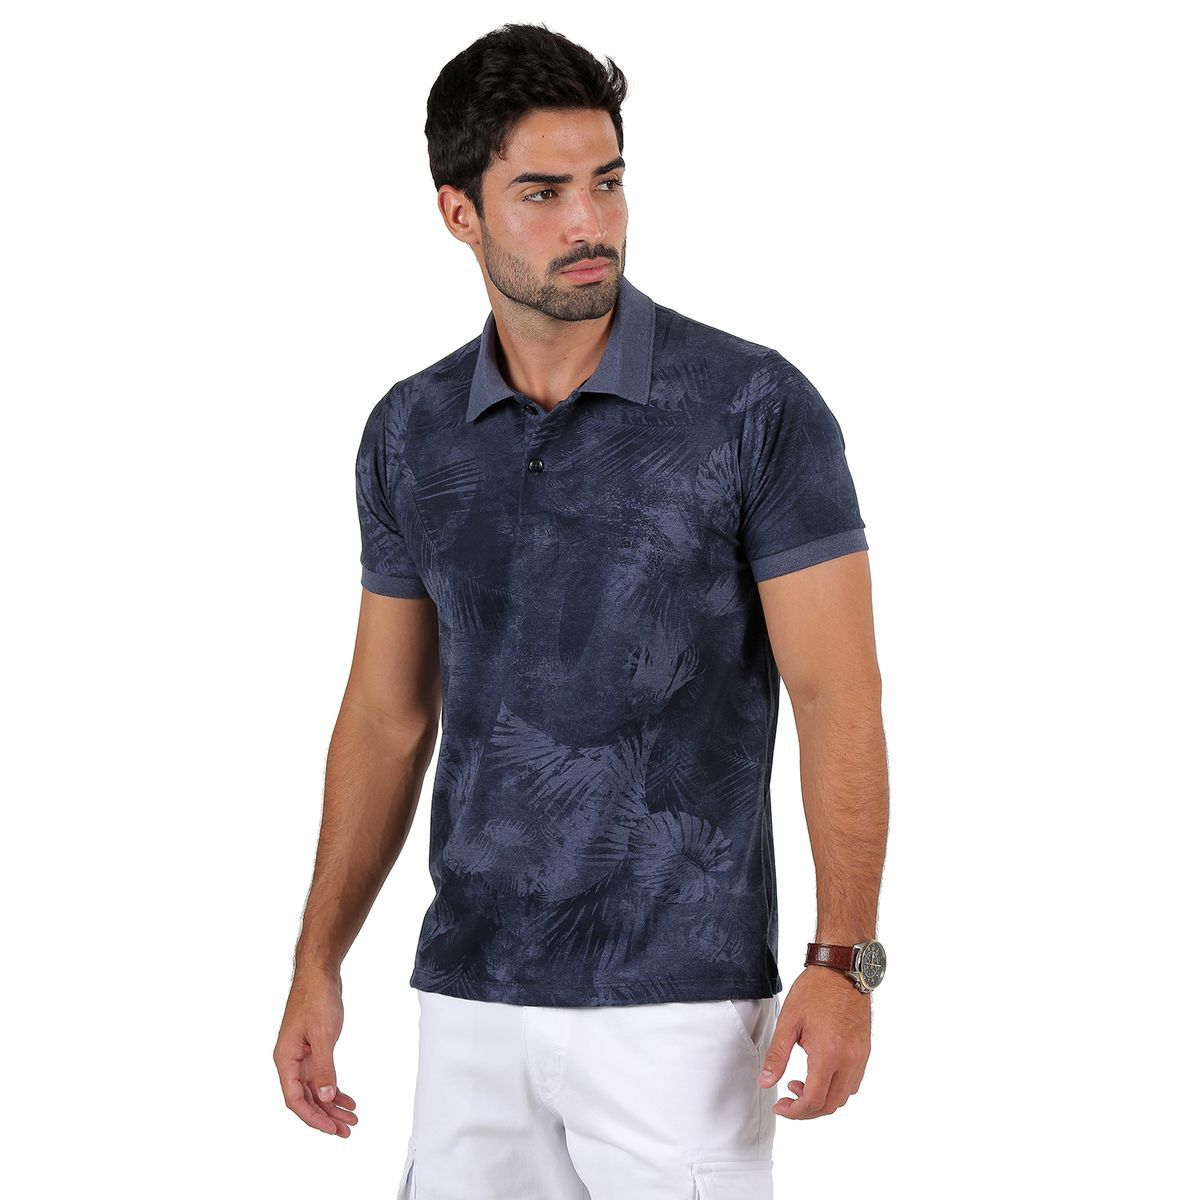 Camisa Polo AES 1975 Cinza Chumbo Floral